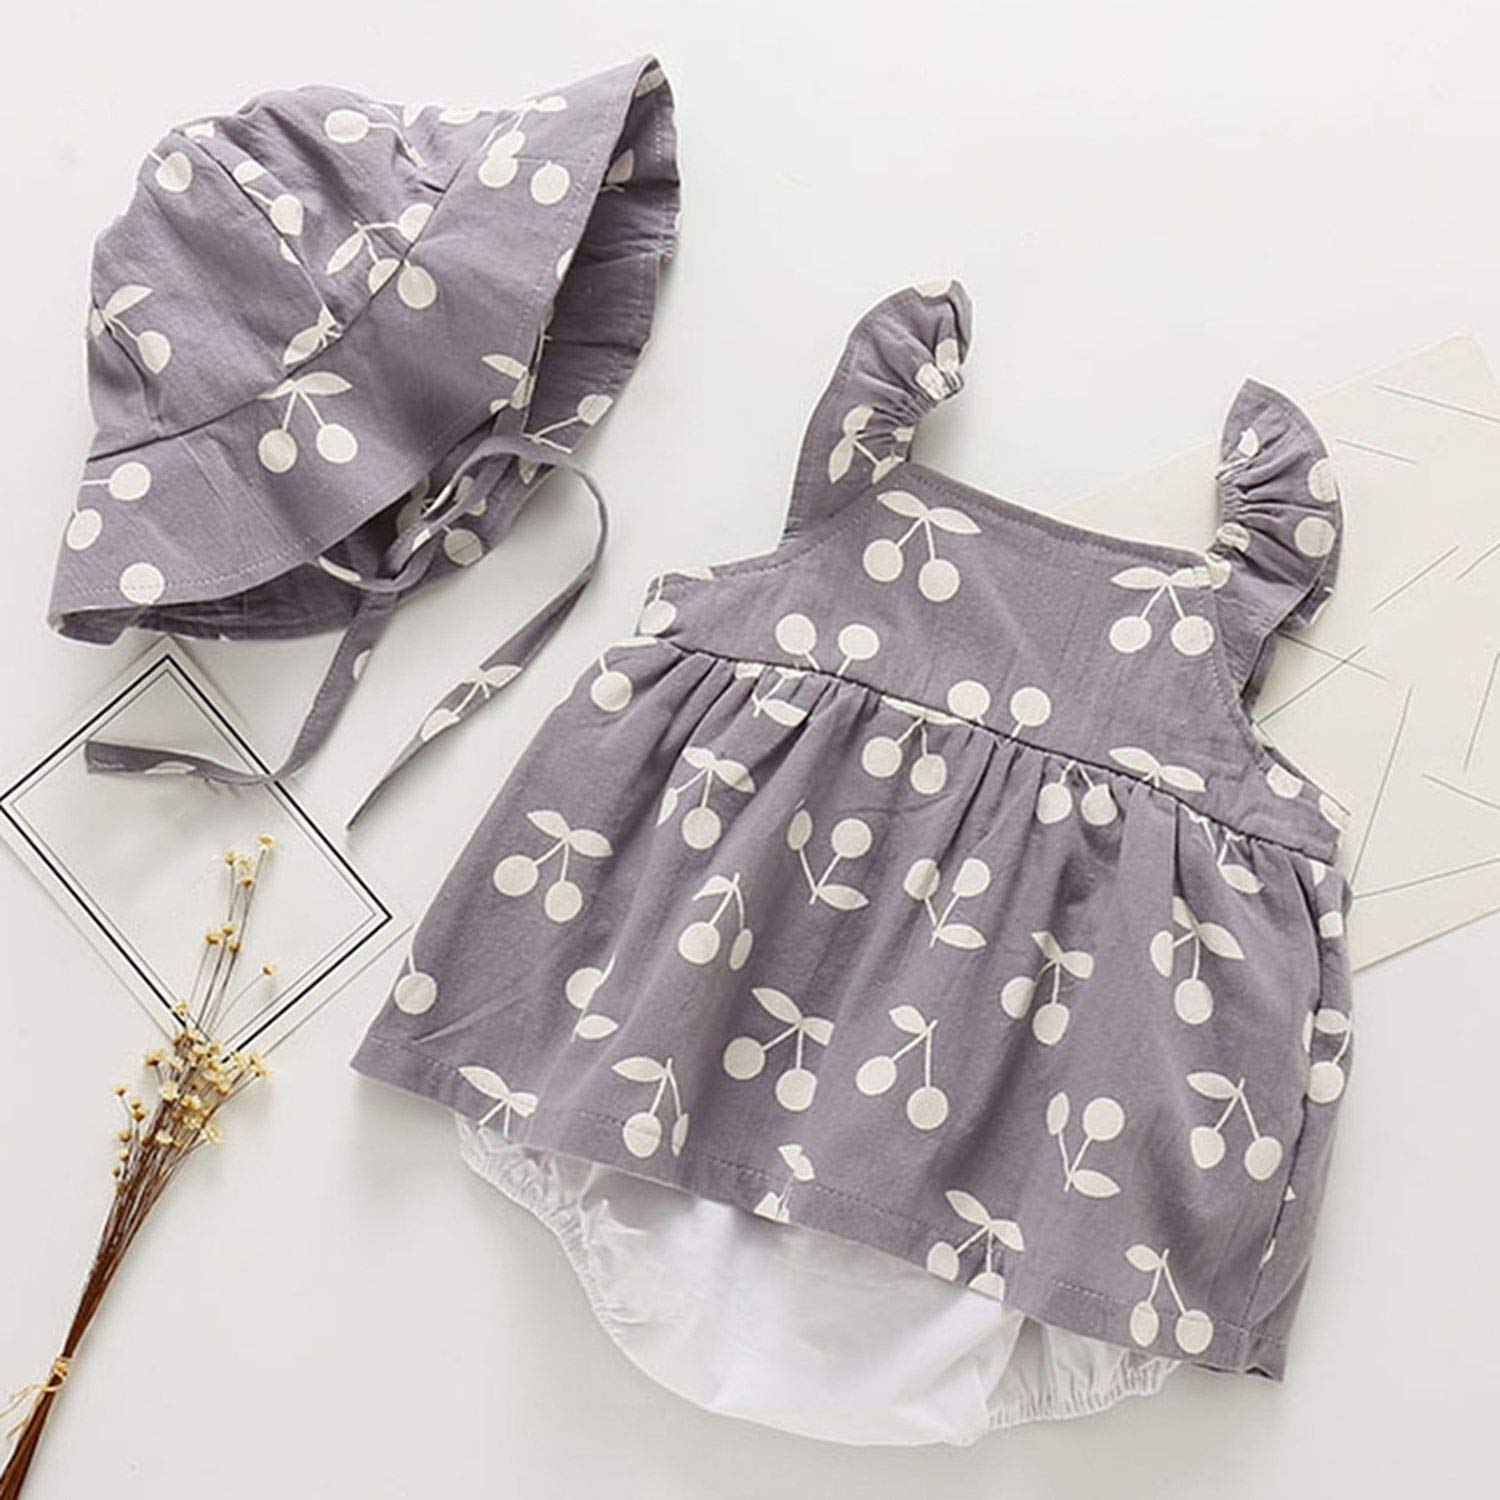 2019 Summer Baby Rompers New Summer Clothes Fashion Cute Cherry Prints Kids Clothing Rompers Dress with Hat